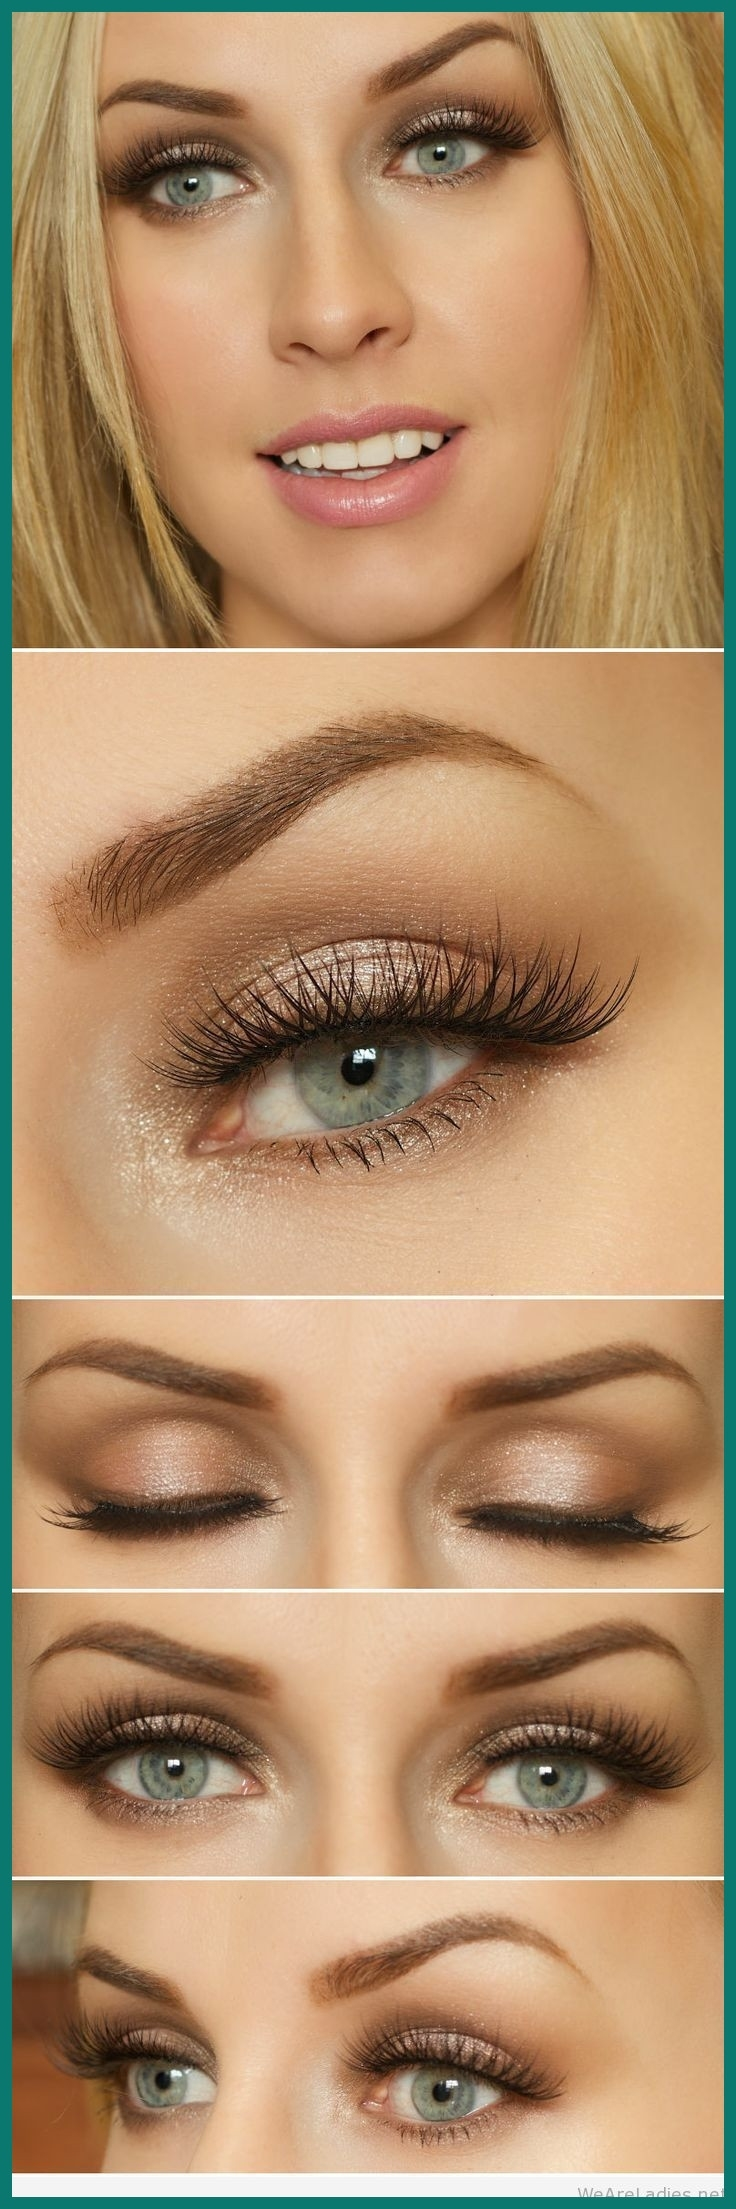 Sightly Eyeshadow Colors For Blue Eyes And Blonde Hair Image with Best Eyeshadow For Blue Green Eyes Blonde Hair